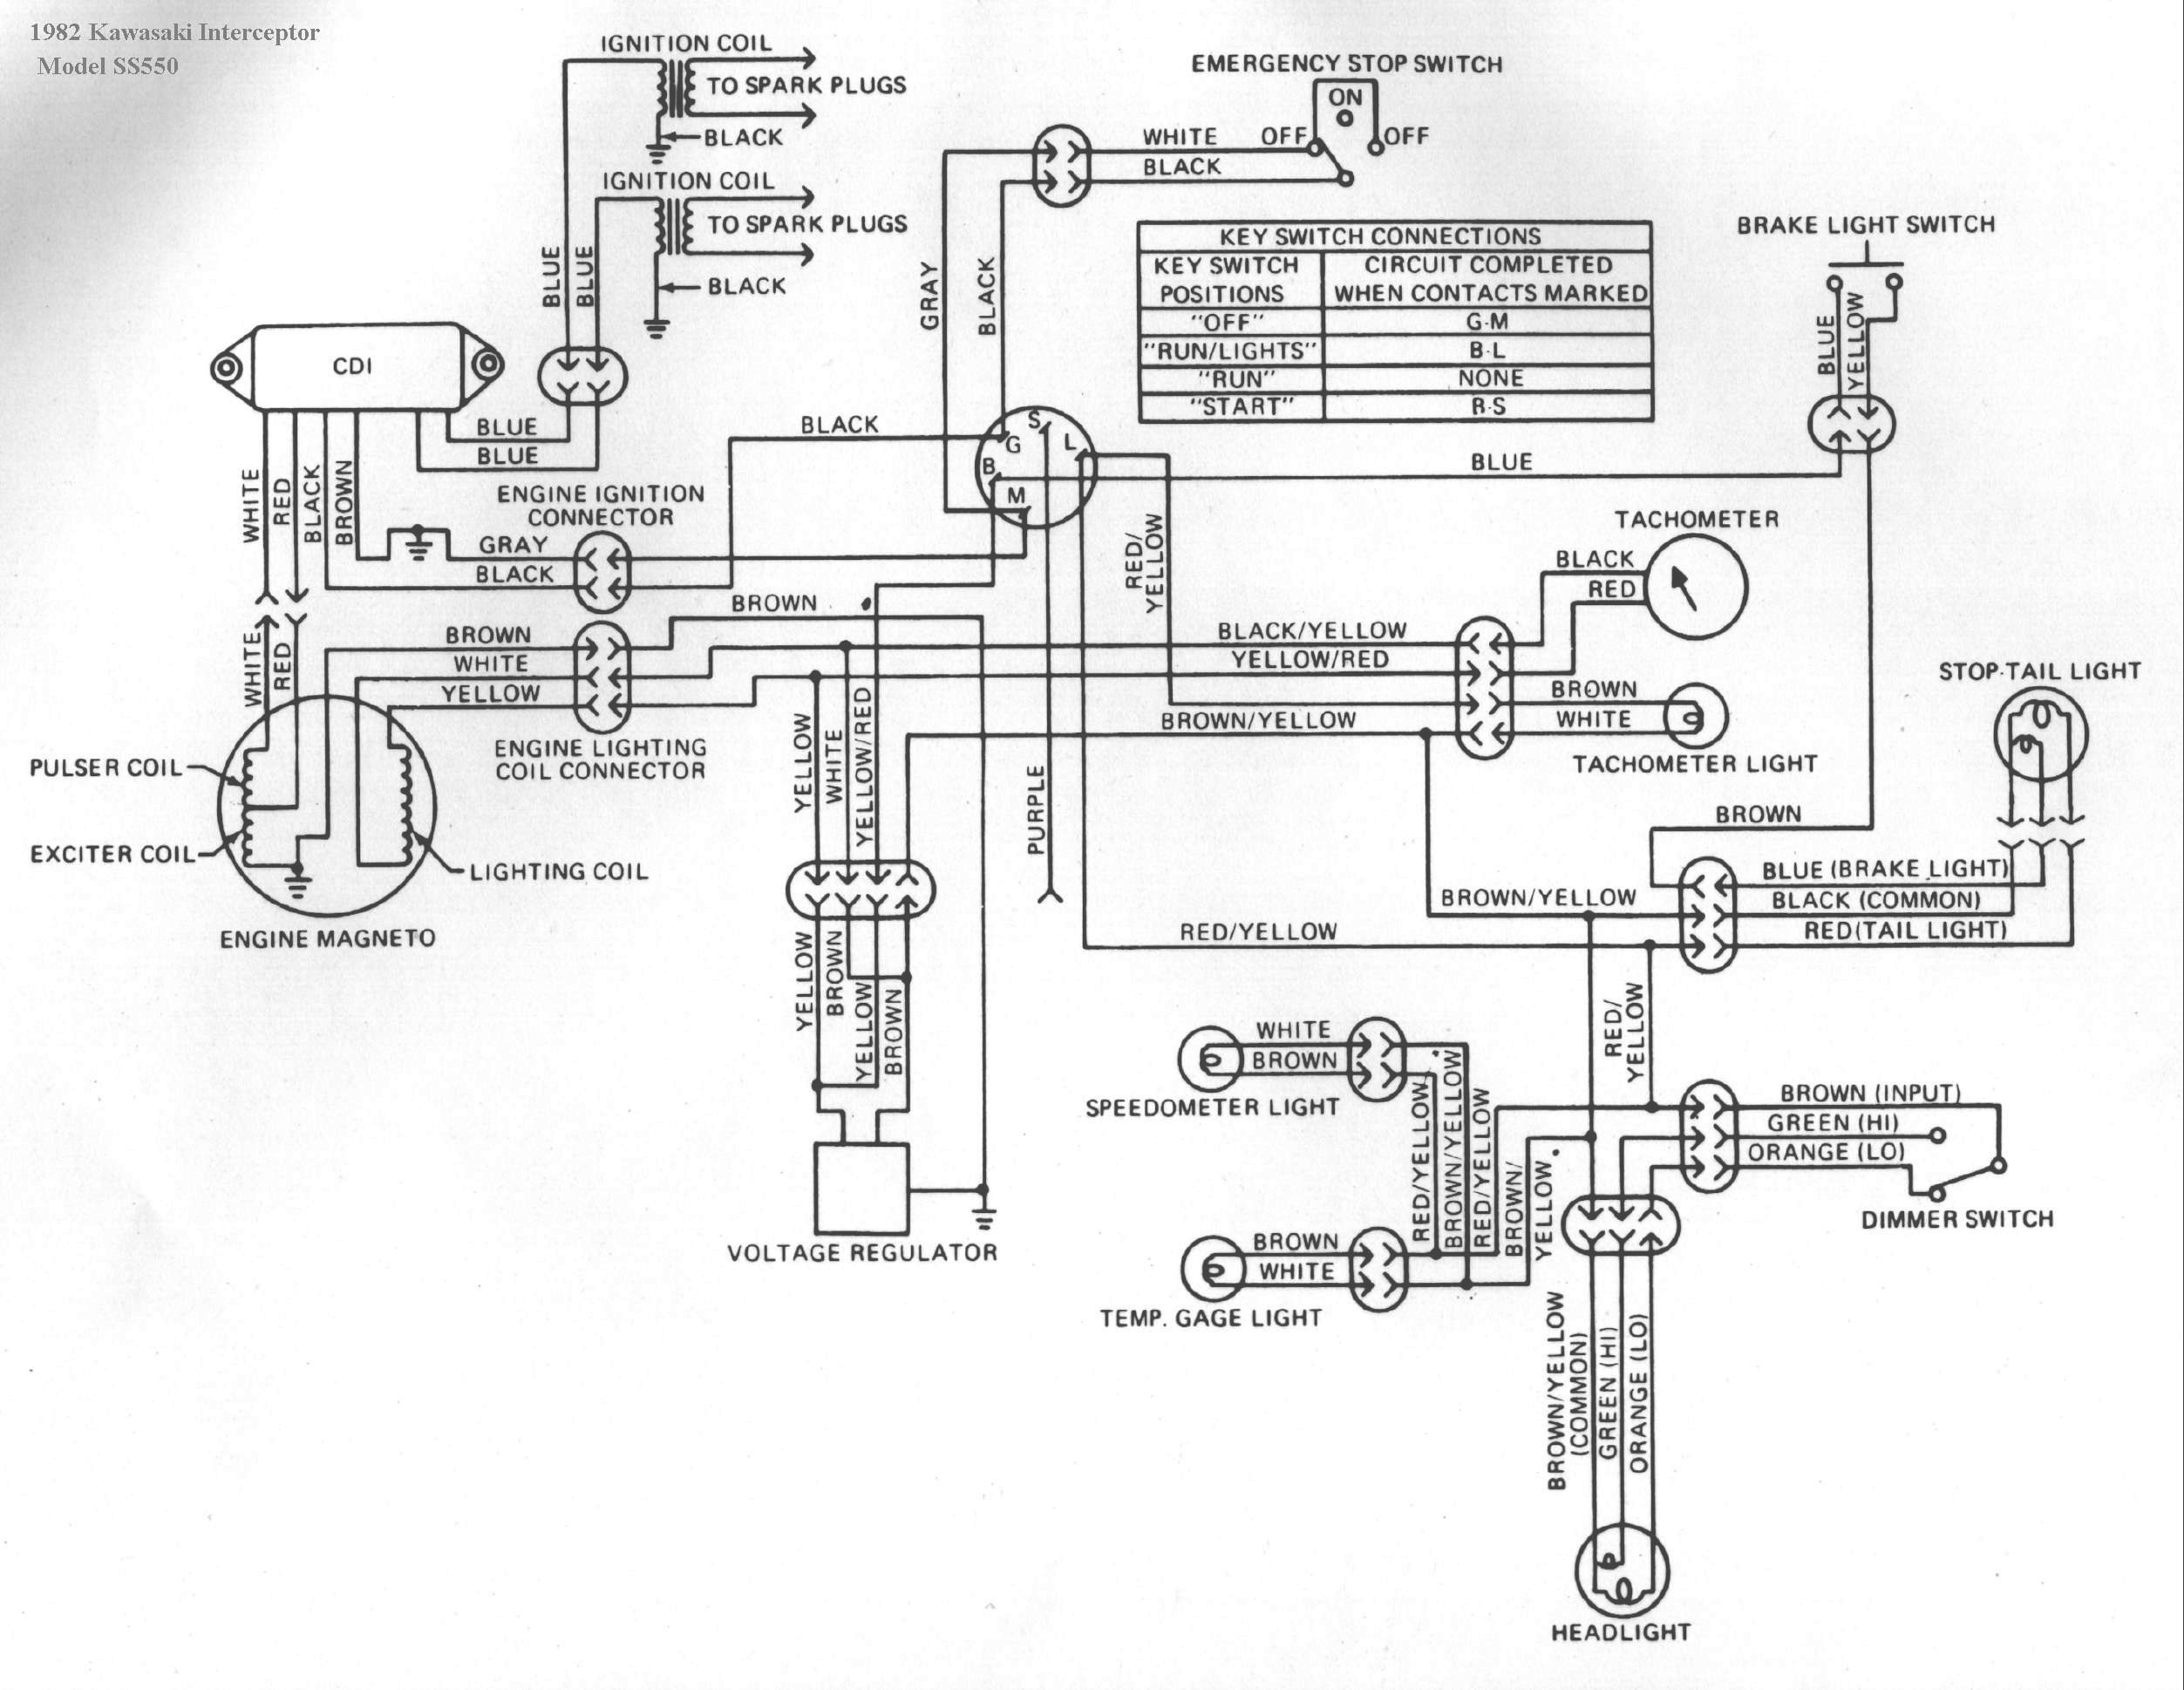 1996 Kawasaki Bayou 300 Part Diagram Wiring Schematic Manual Guide